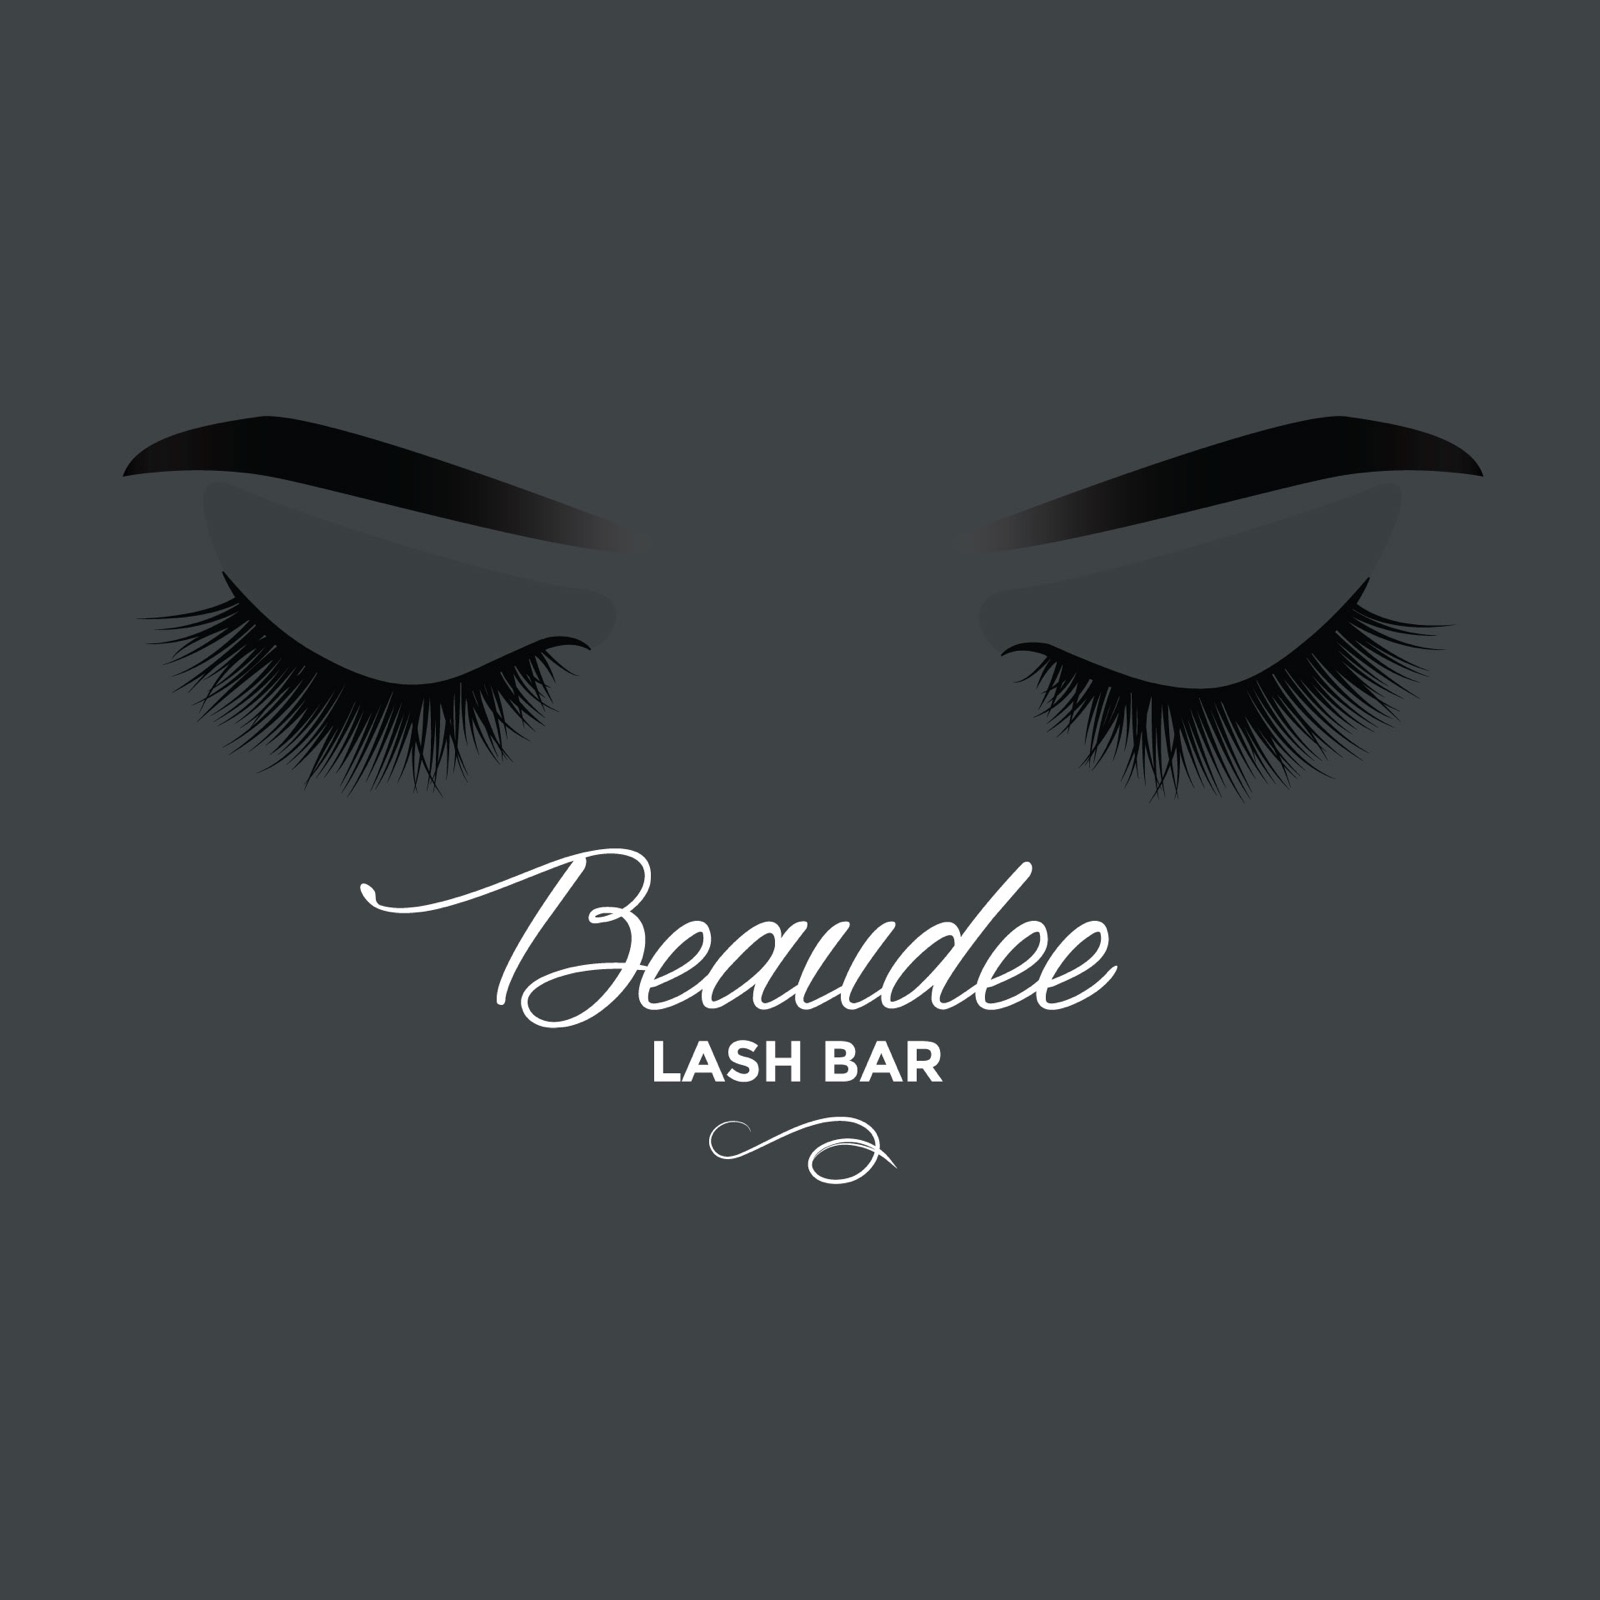 Beaudee Lash Bar in Philadelphia, PA